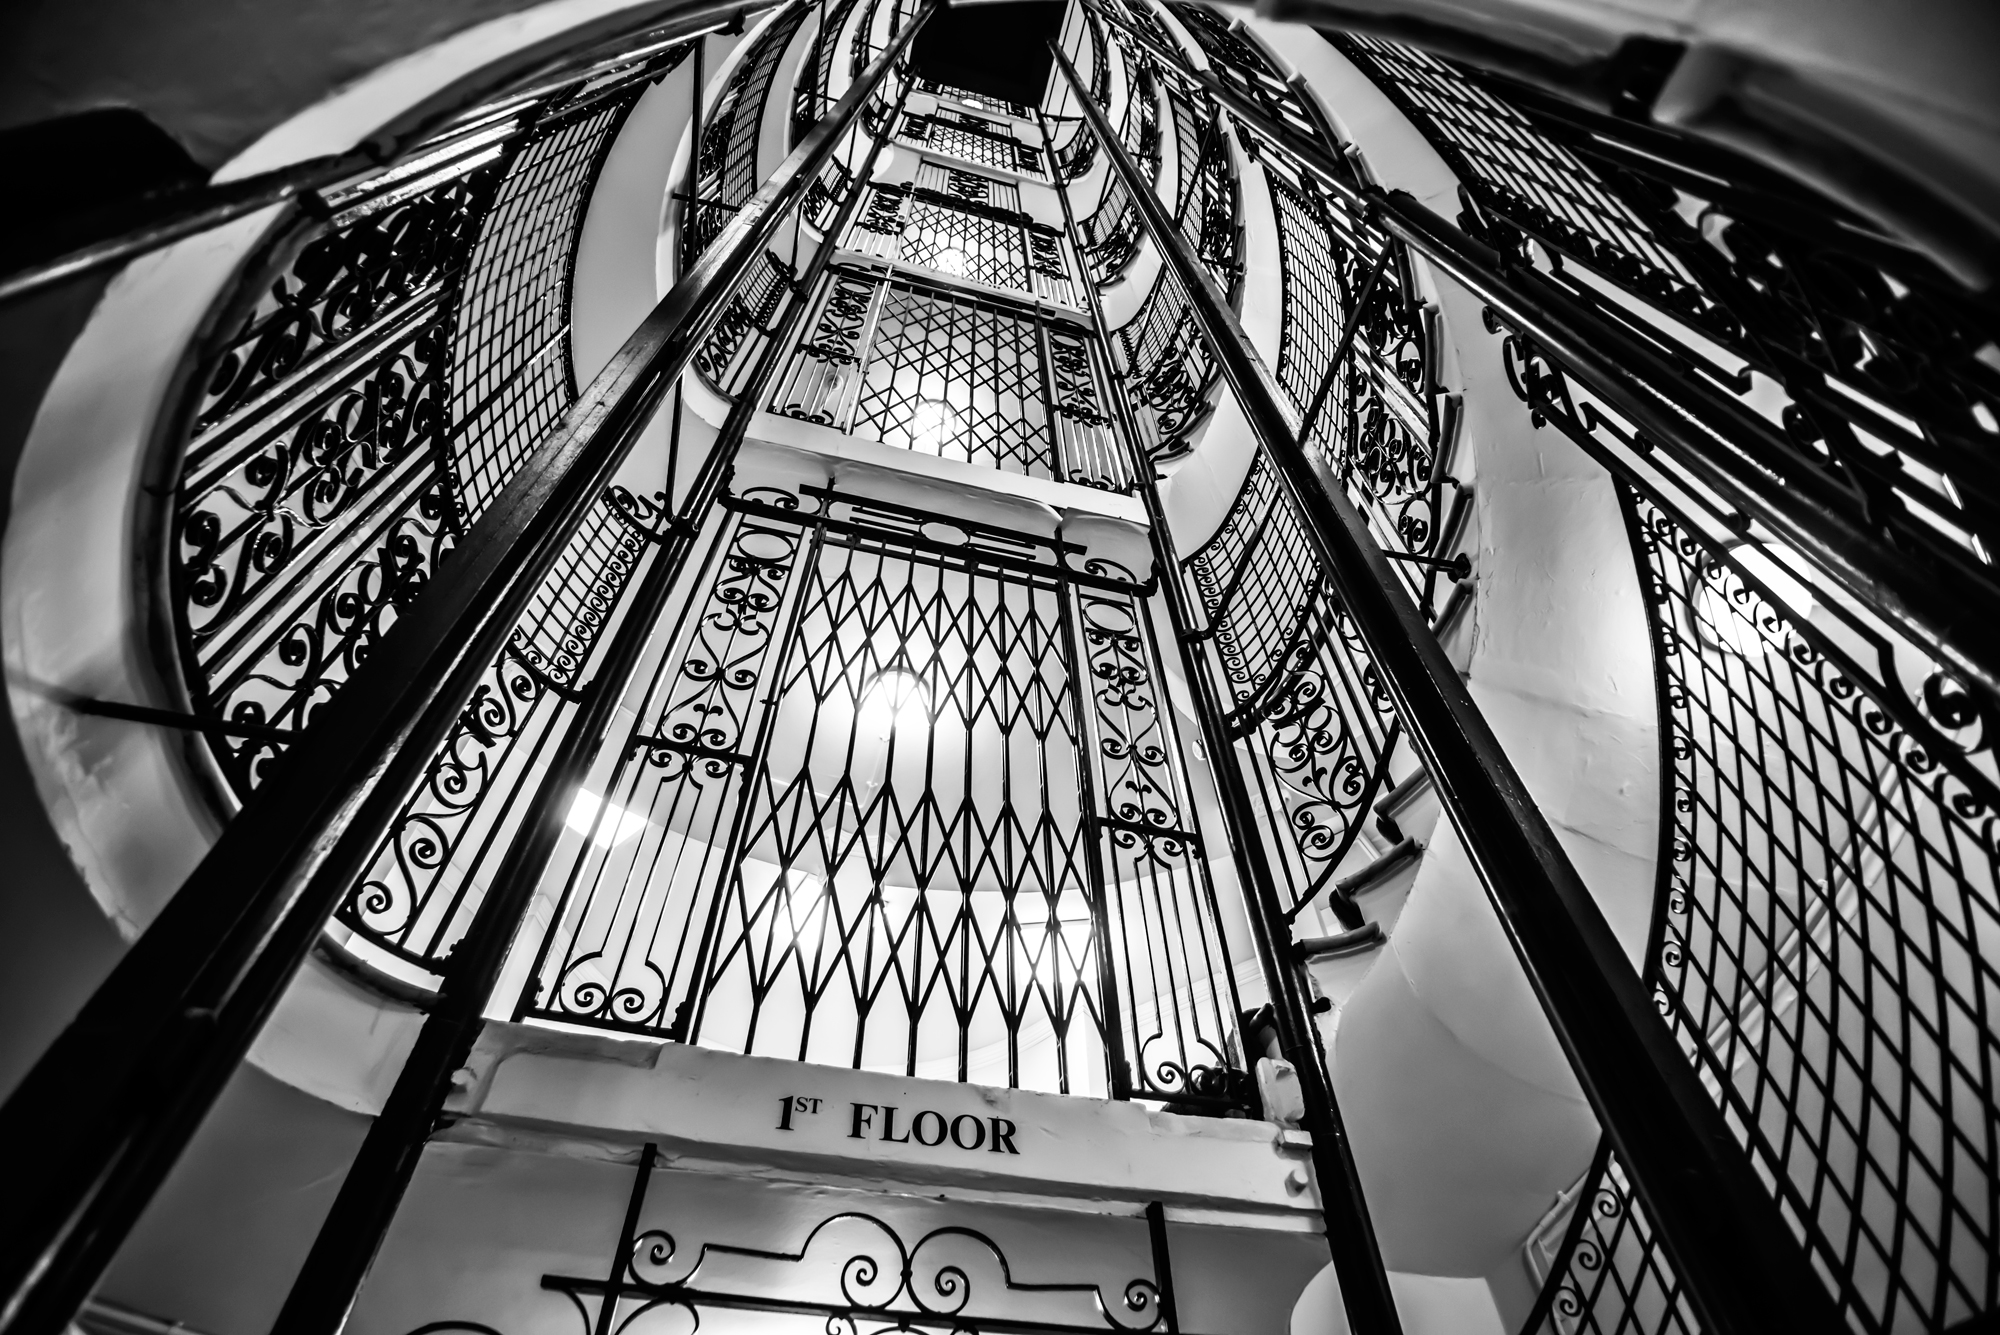 Paul Ward Captures The Grandeur Of Cunard's Iconic Offices